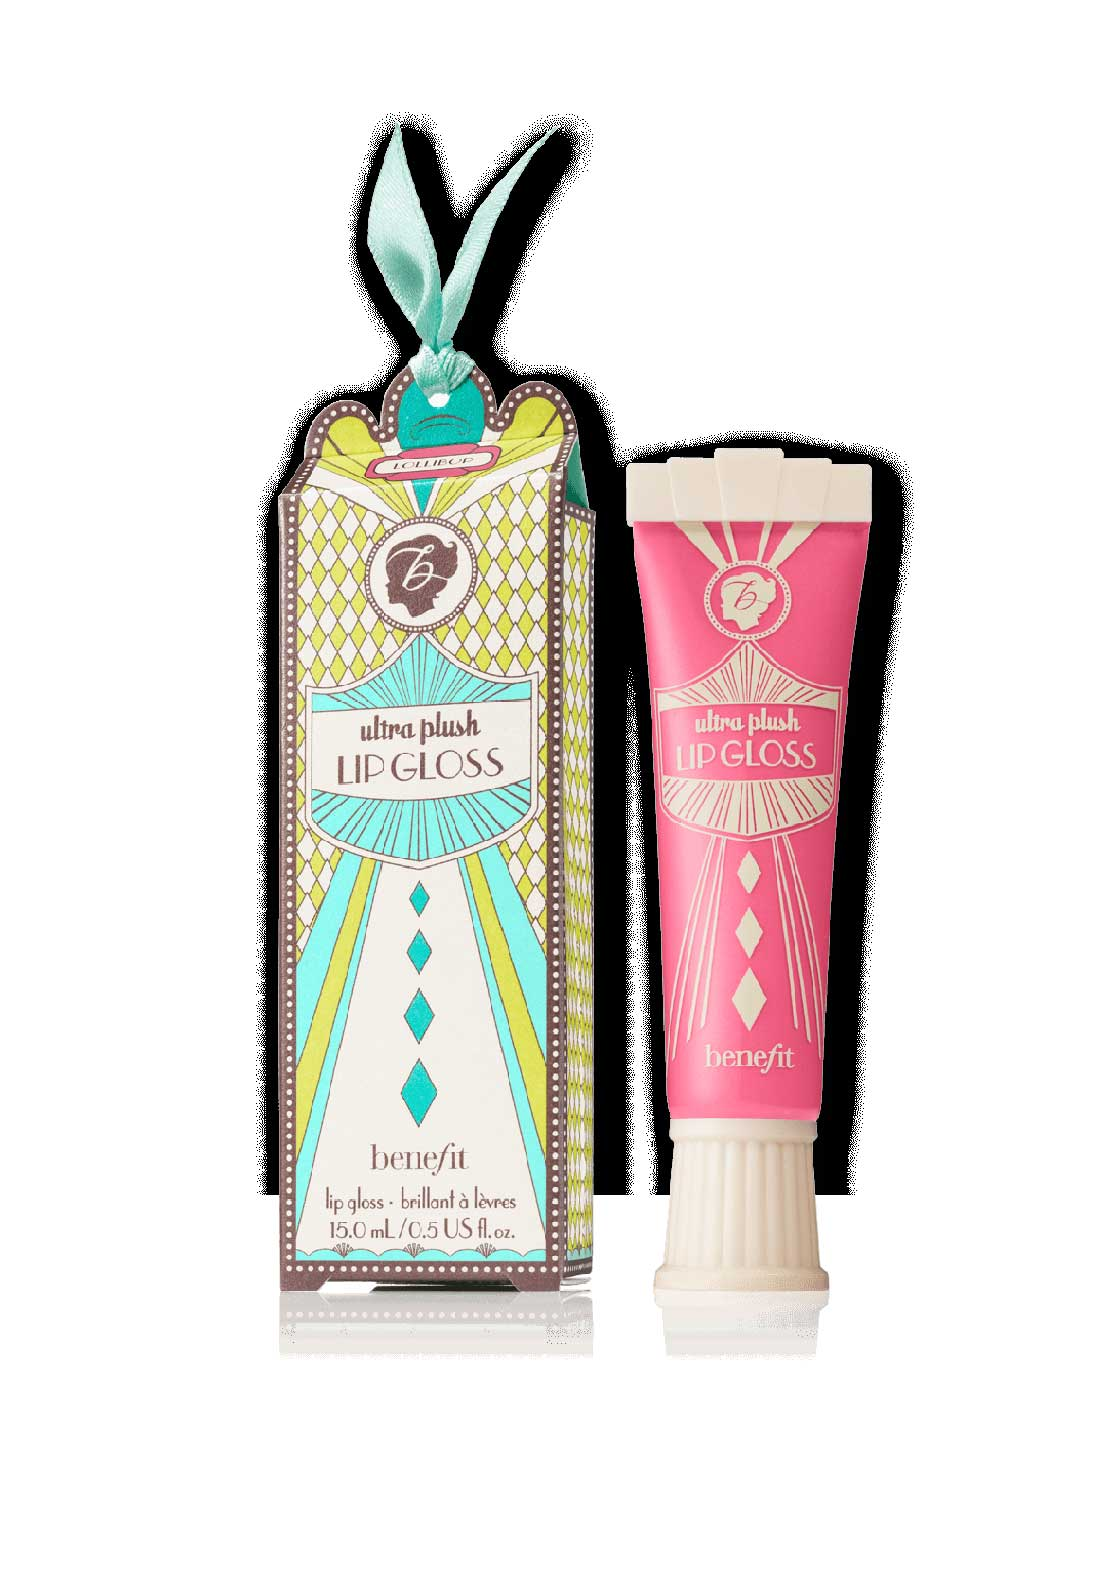 Benefit Ultra Plush Lipgloss